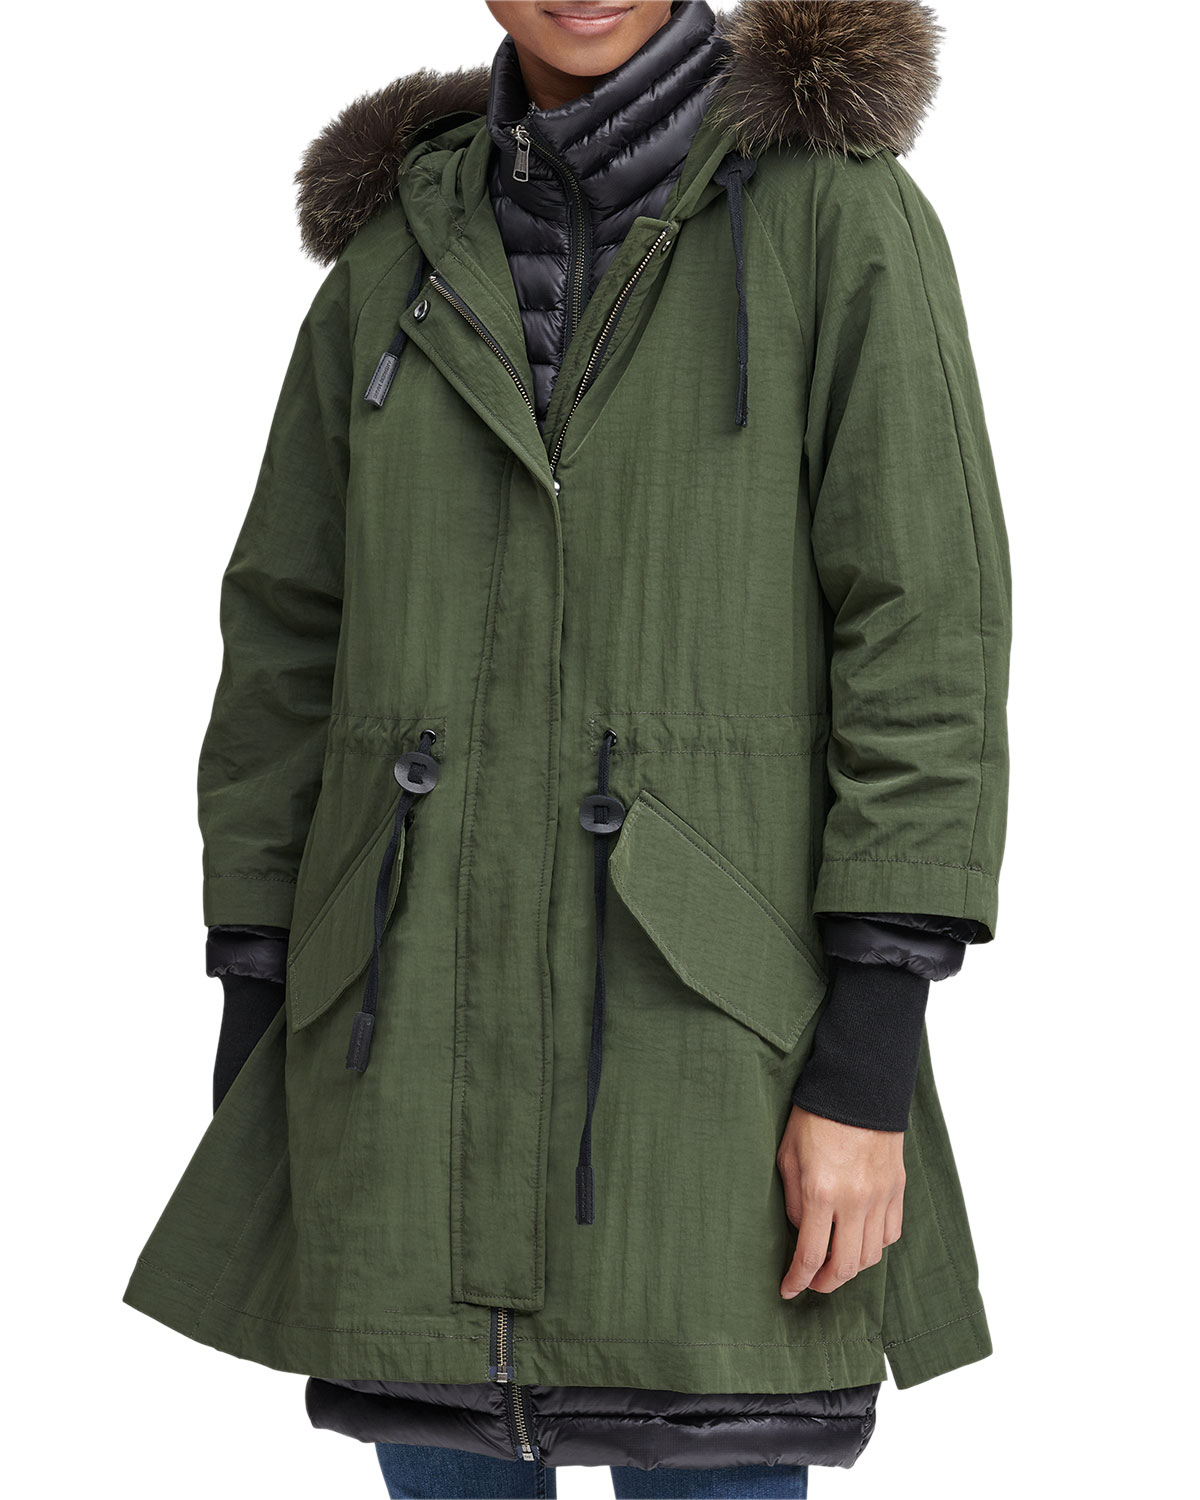 fe171950166 Andrew Marc Brixton Fur Trimmed Hooded Down Parka Coat | Neiman Marcus